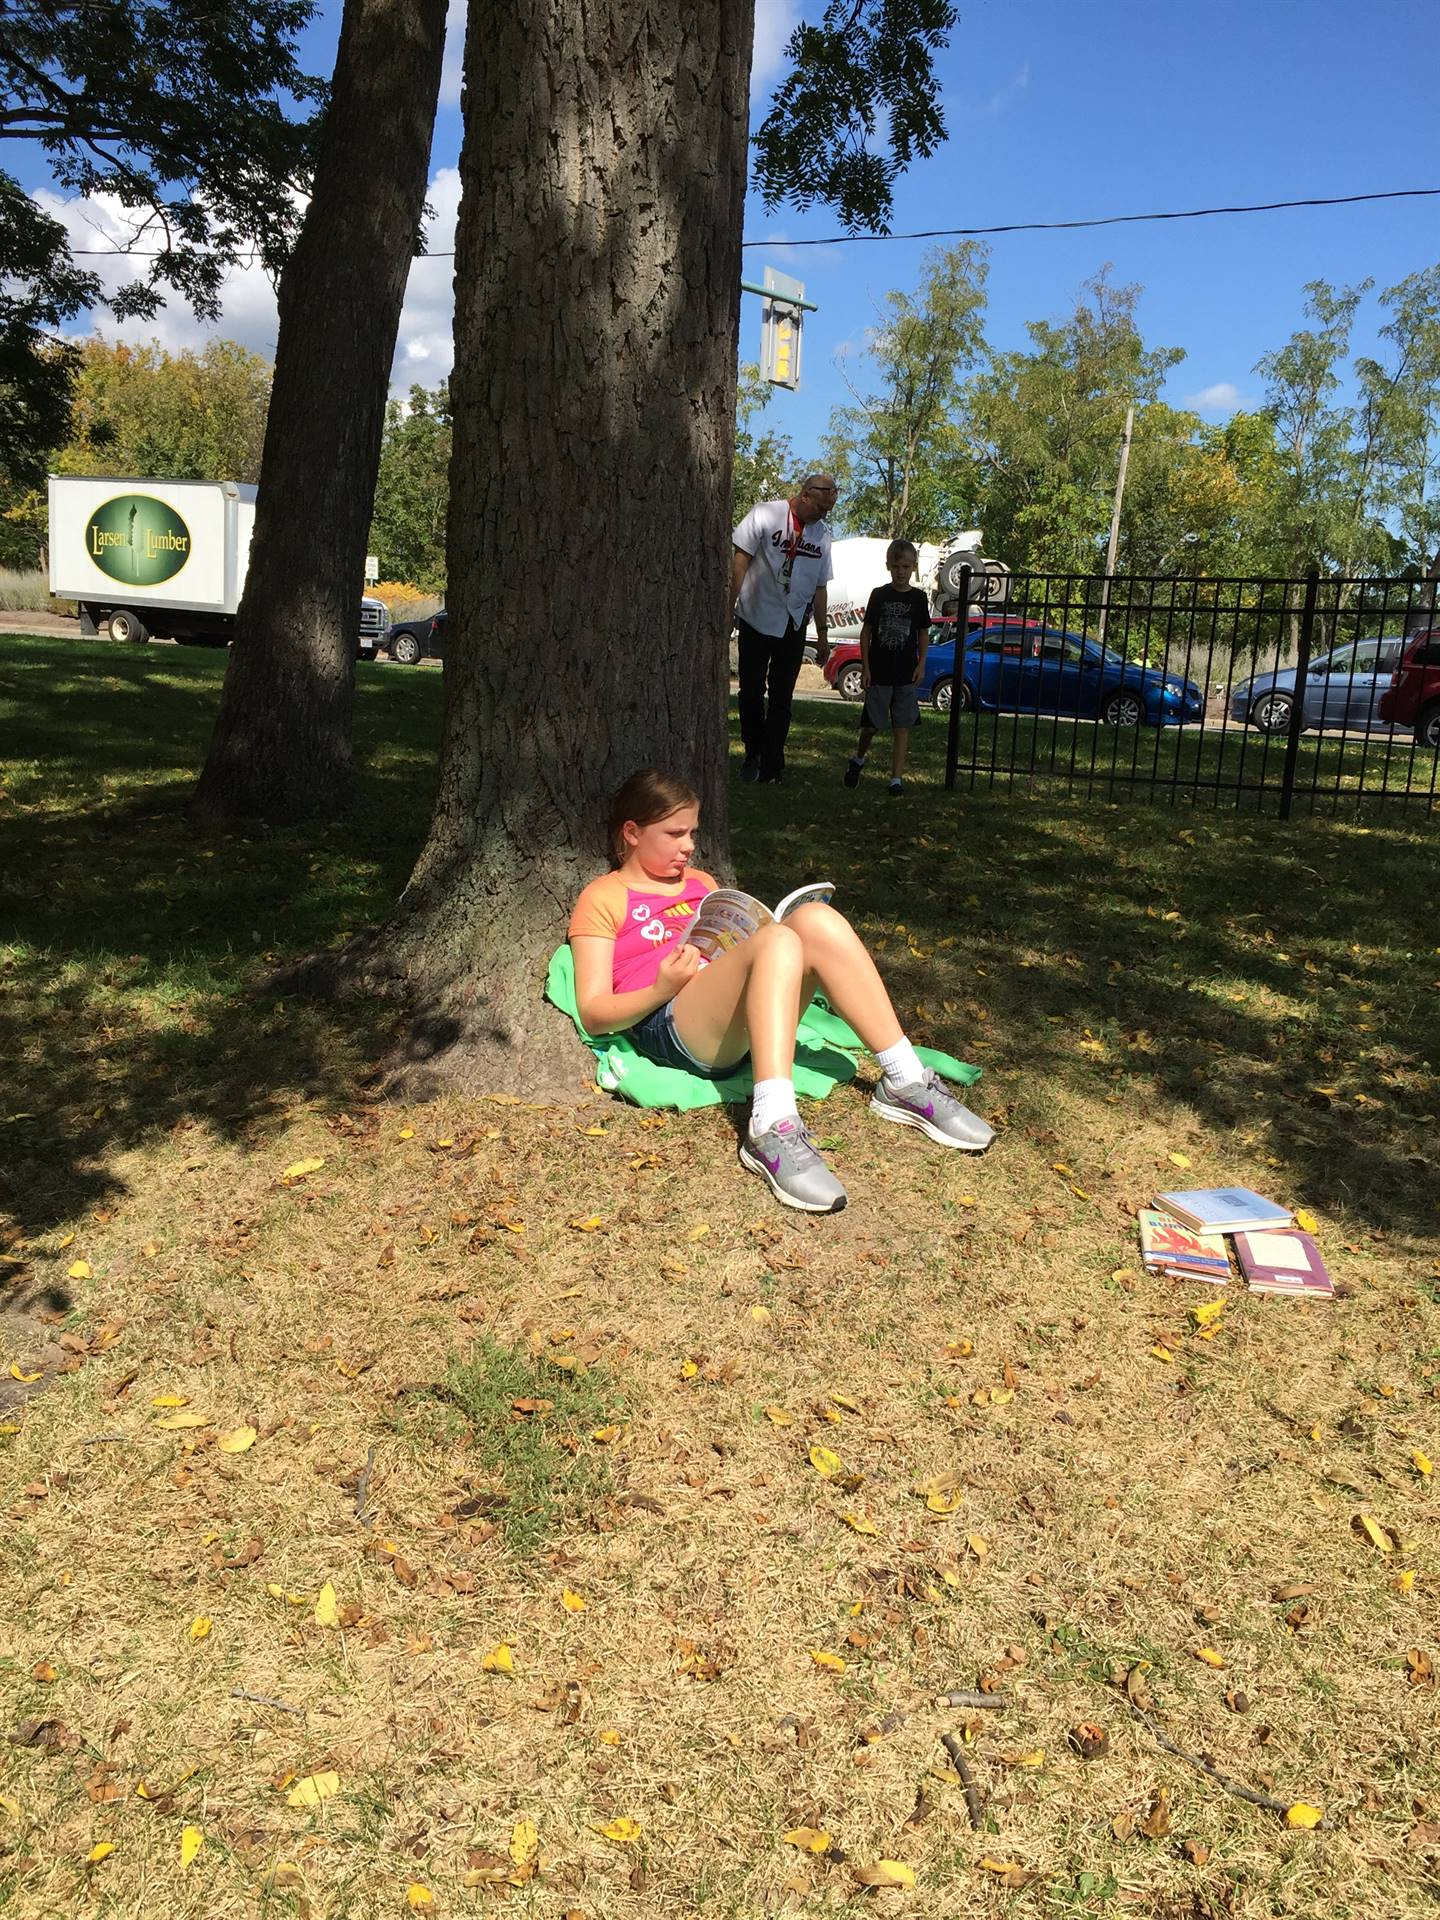 Relaxing with a book at recess